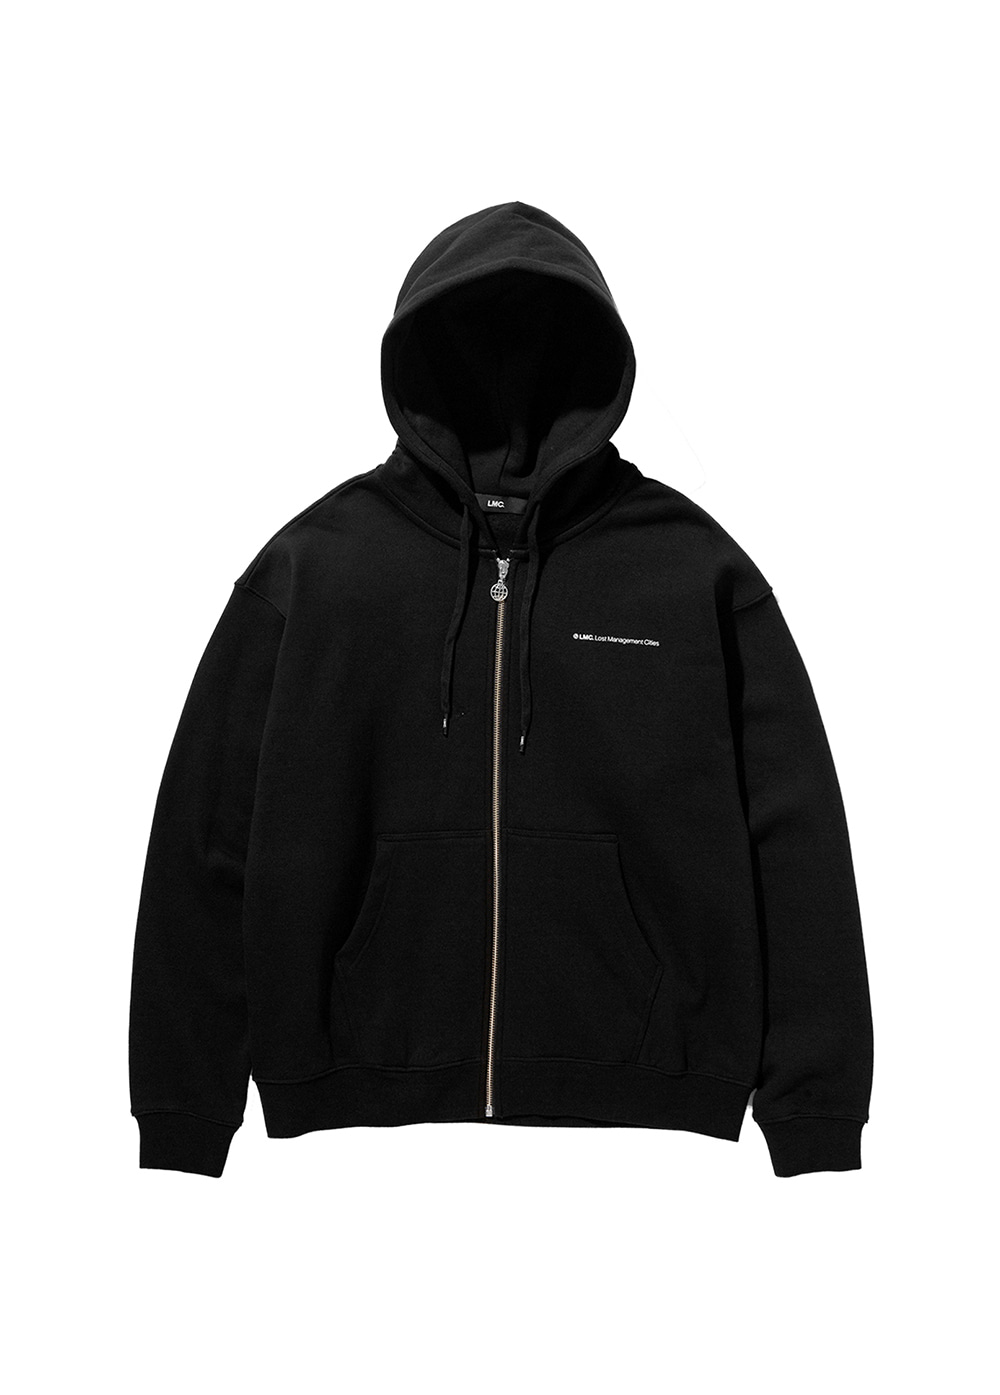 LMC FN ZIP-UP HOODIE black